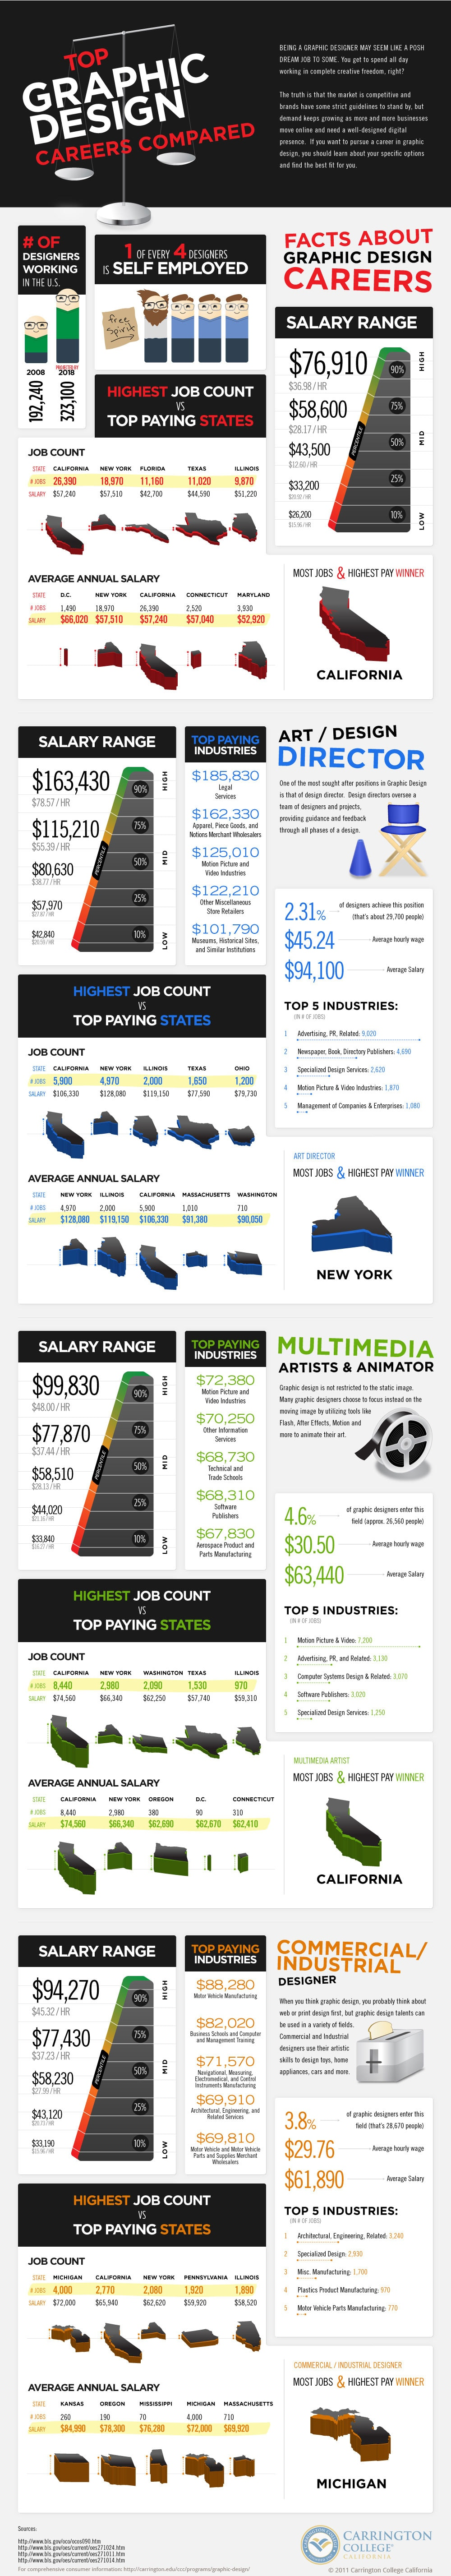 graphic-design-careers-infographic